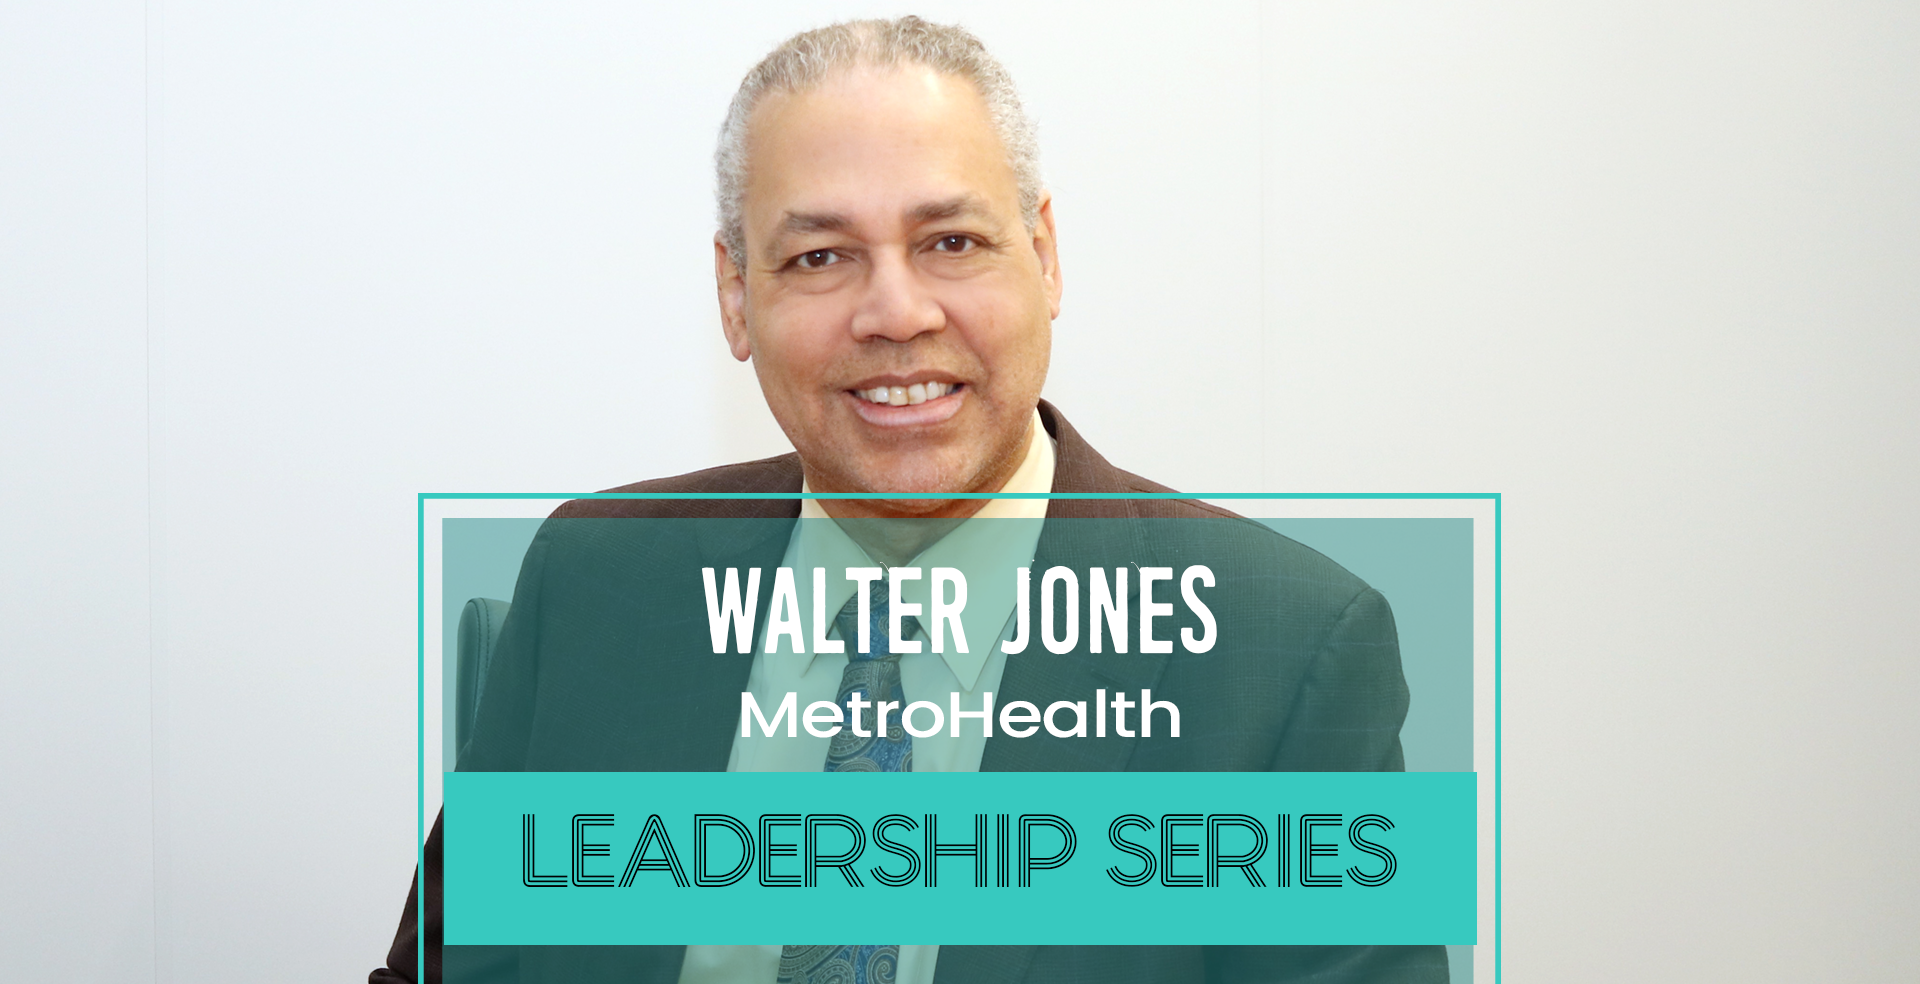 Walter-Jones-HealthSpaces1